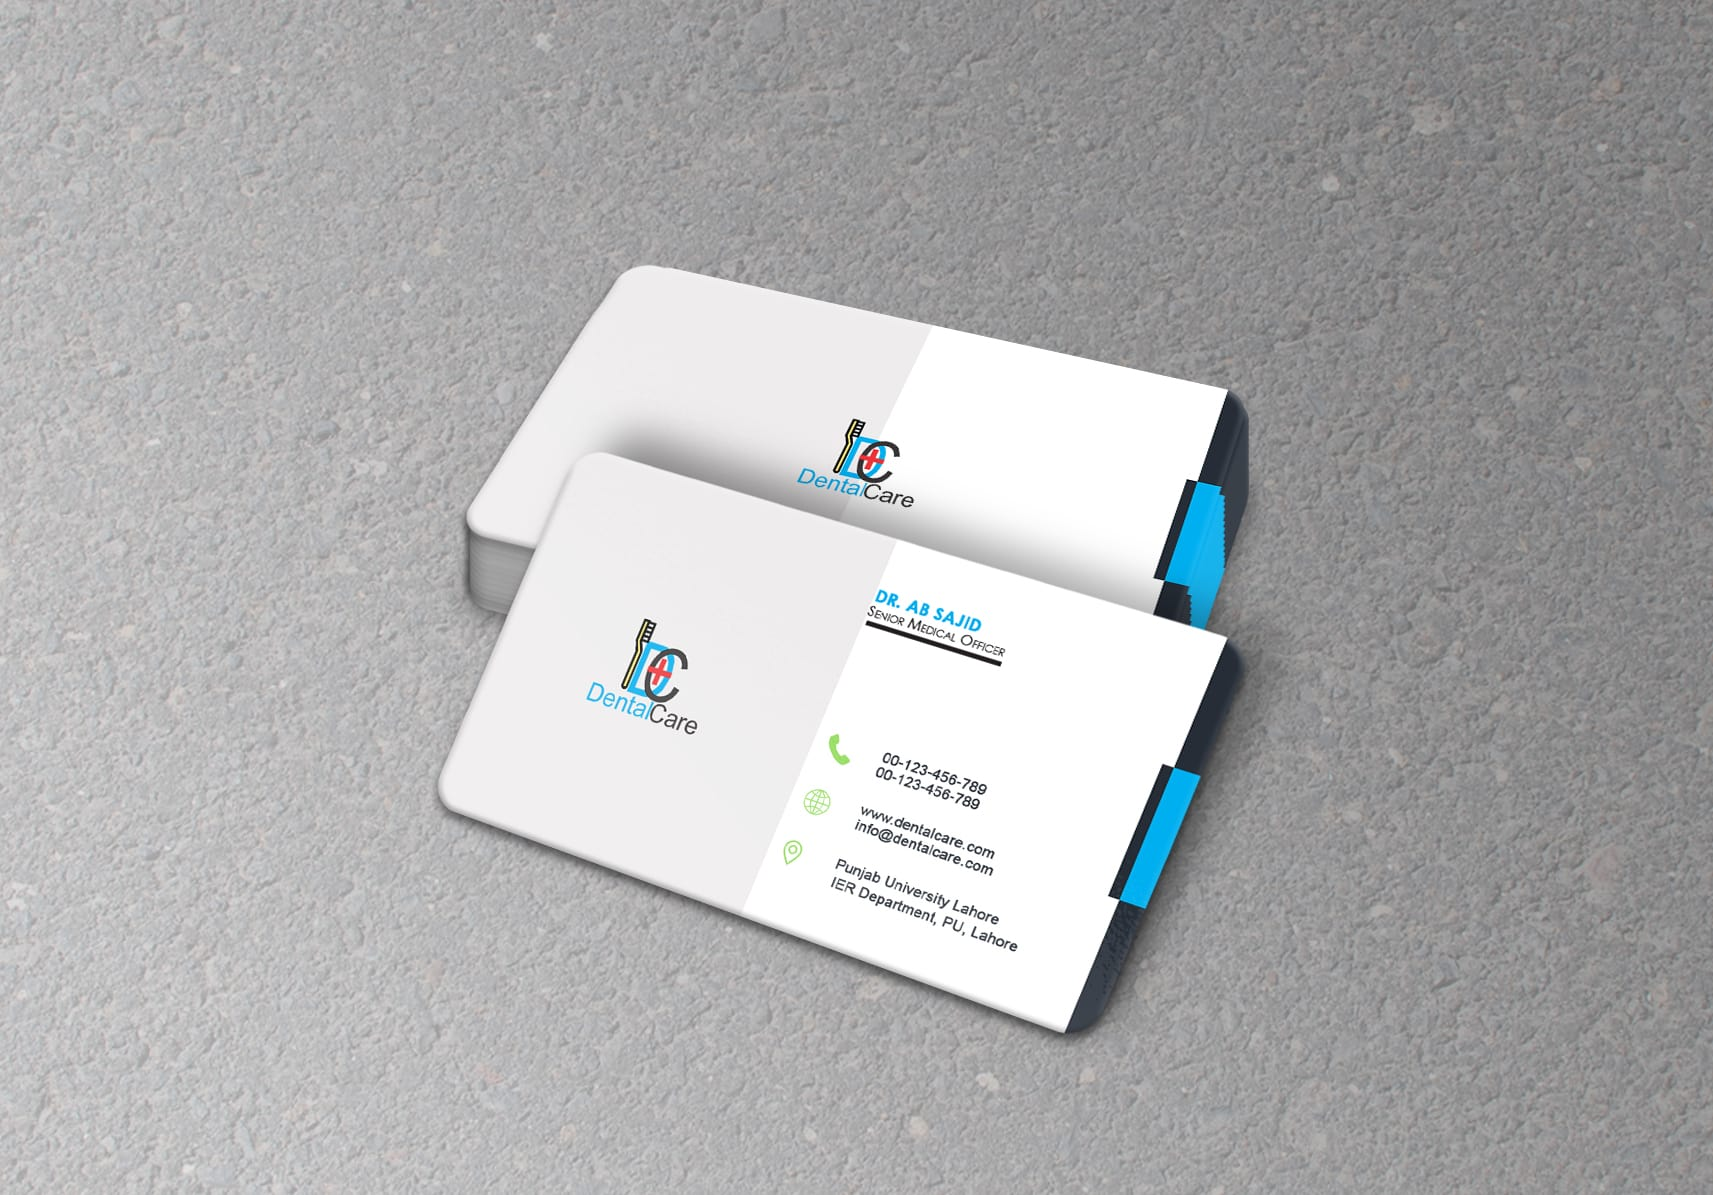 41fdd7966a3f8 Design outstanding print ready professional business card by Themanaaf